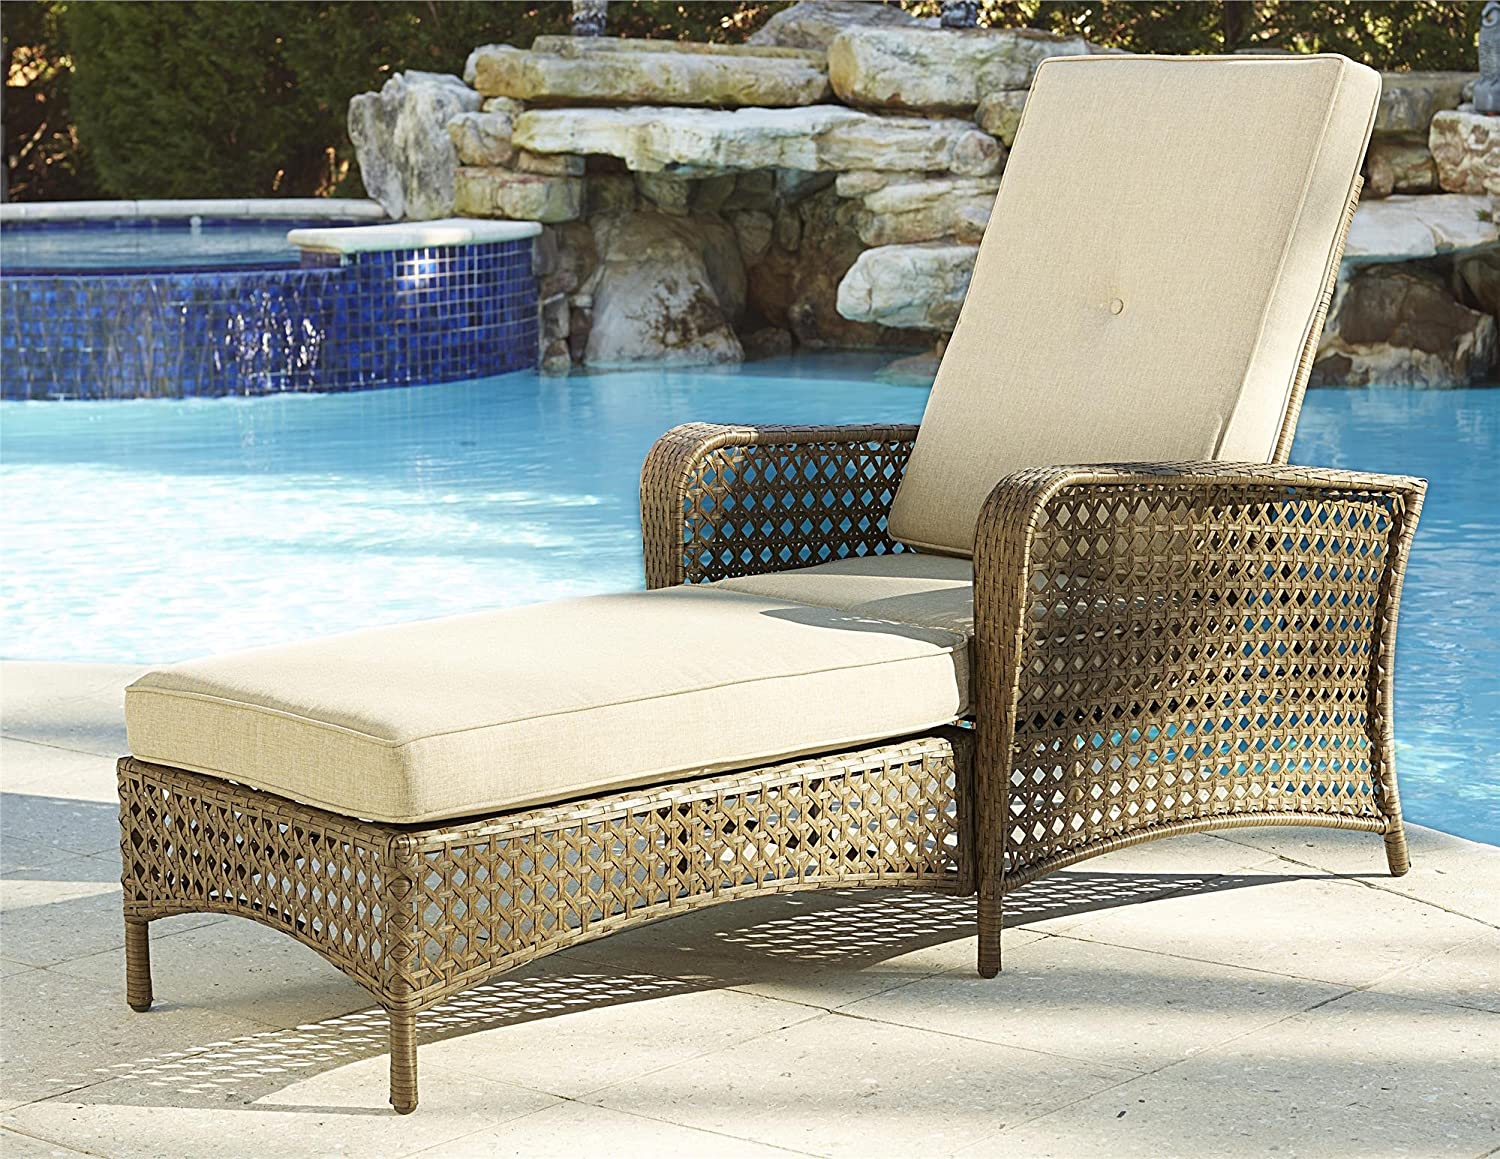 Cosco Outdoor Adjustable Chaise Lounge Chair Lakewood Ranch Steel Woven Wicker Patio Furniture with Cushion, Brown